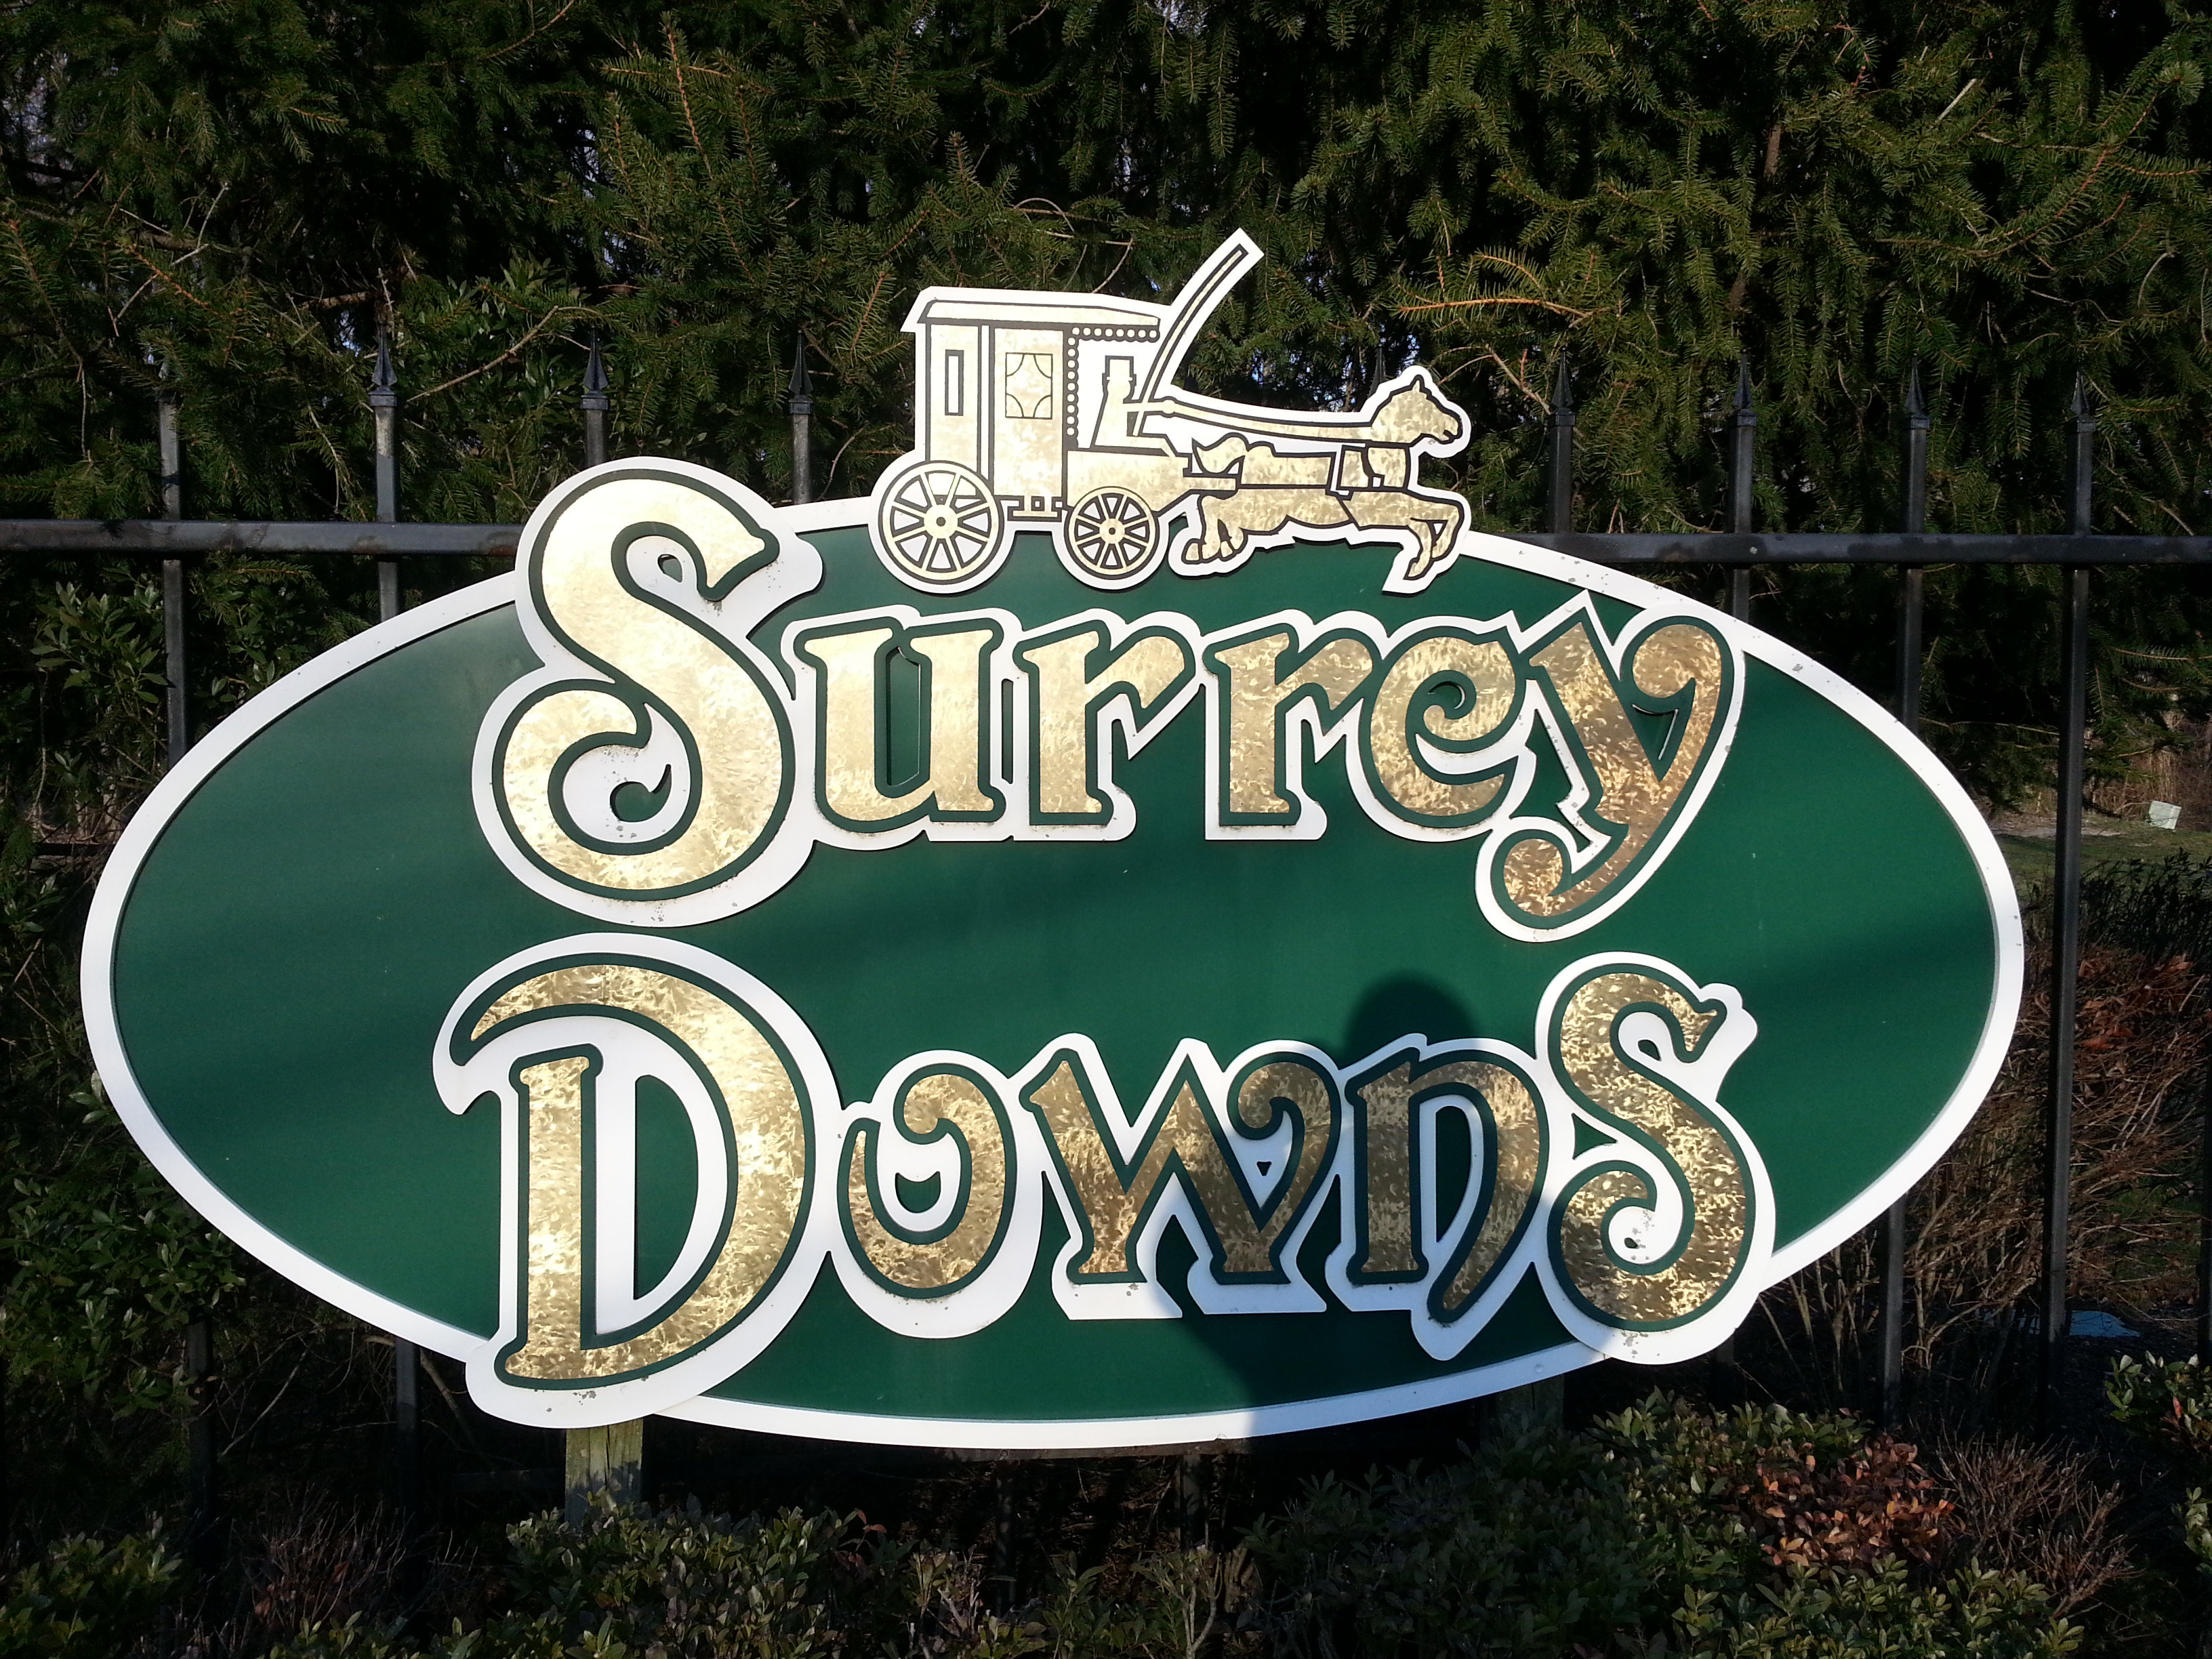 Surrey Downs is an active adult community located in Howell NJ 07731